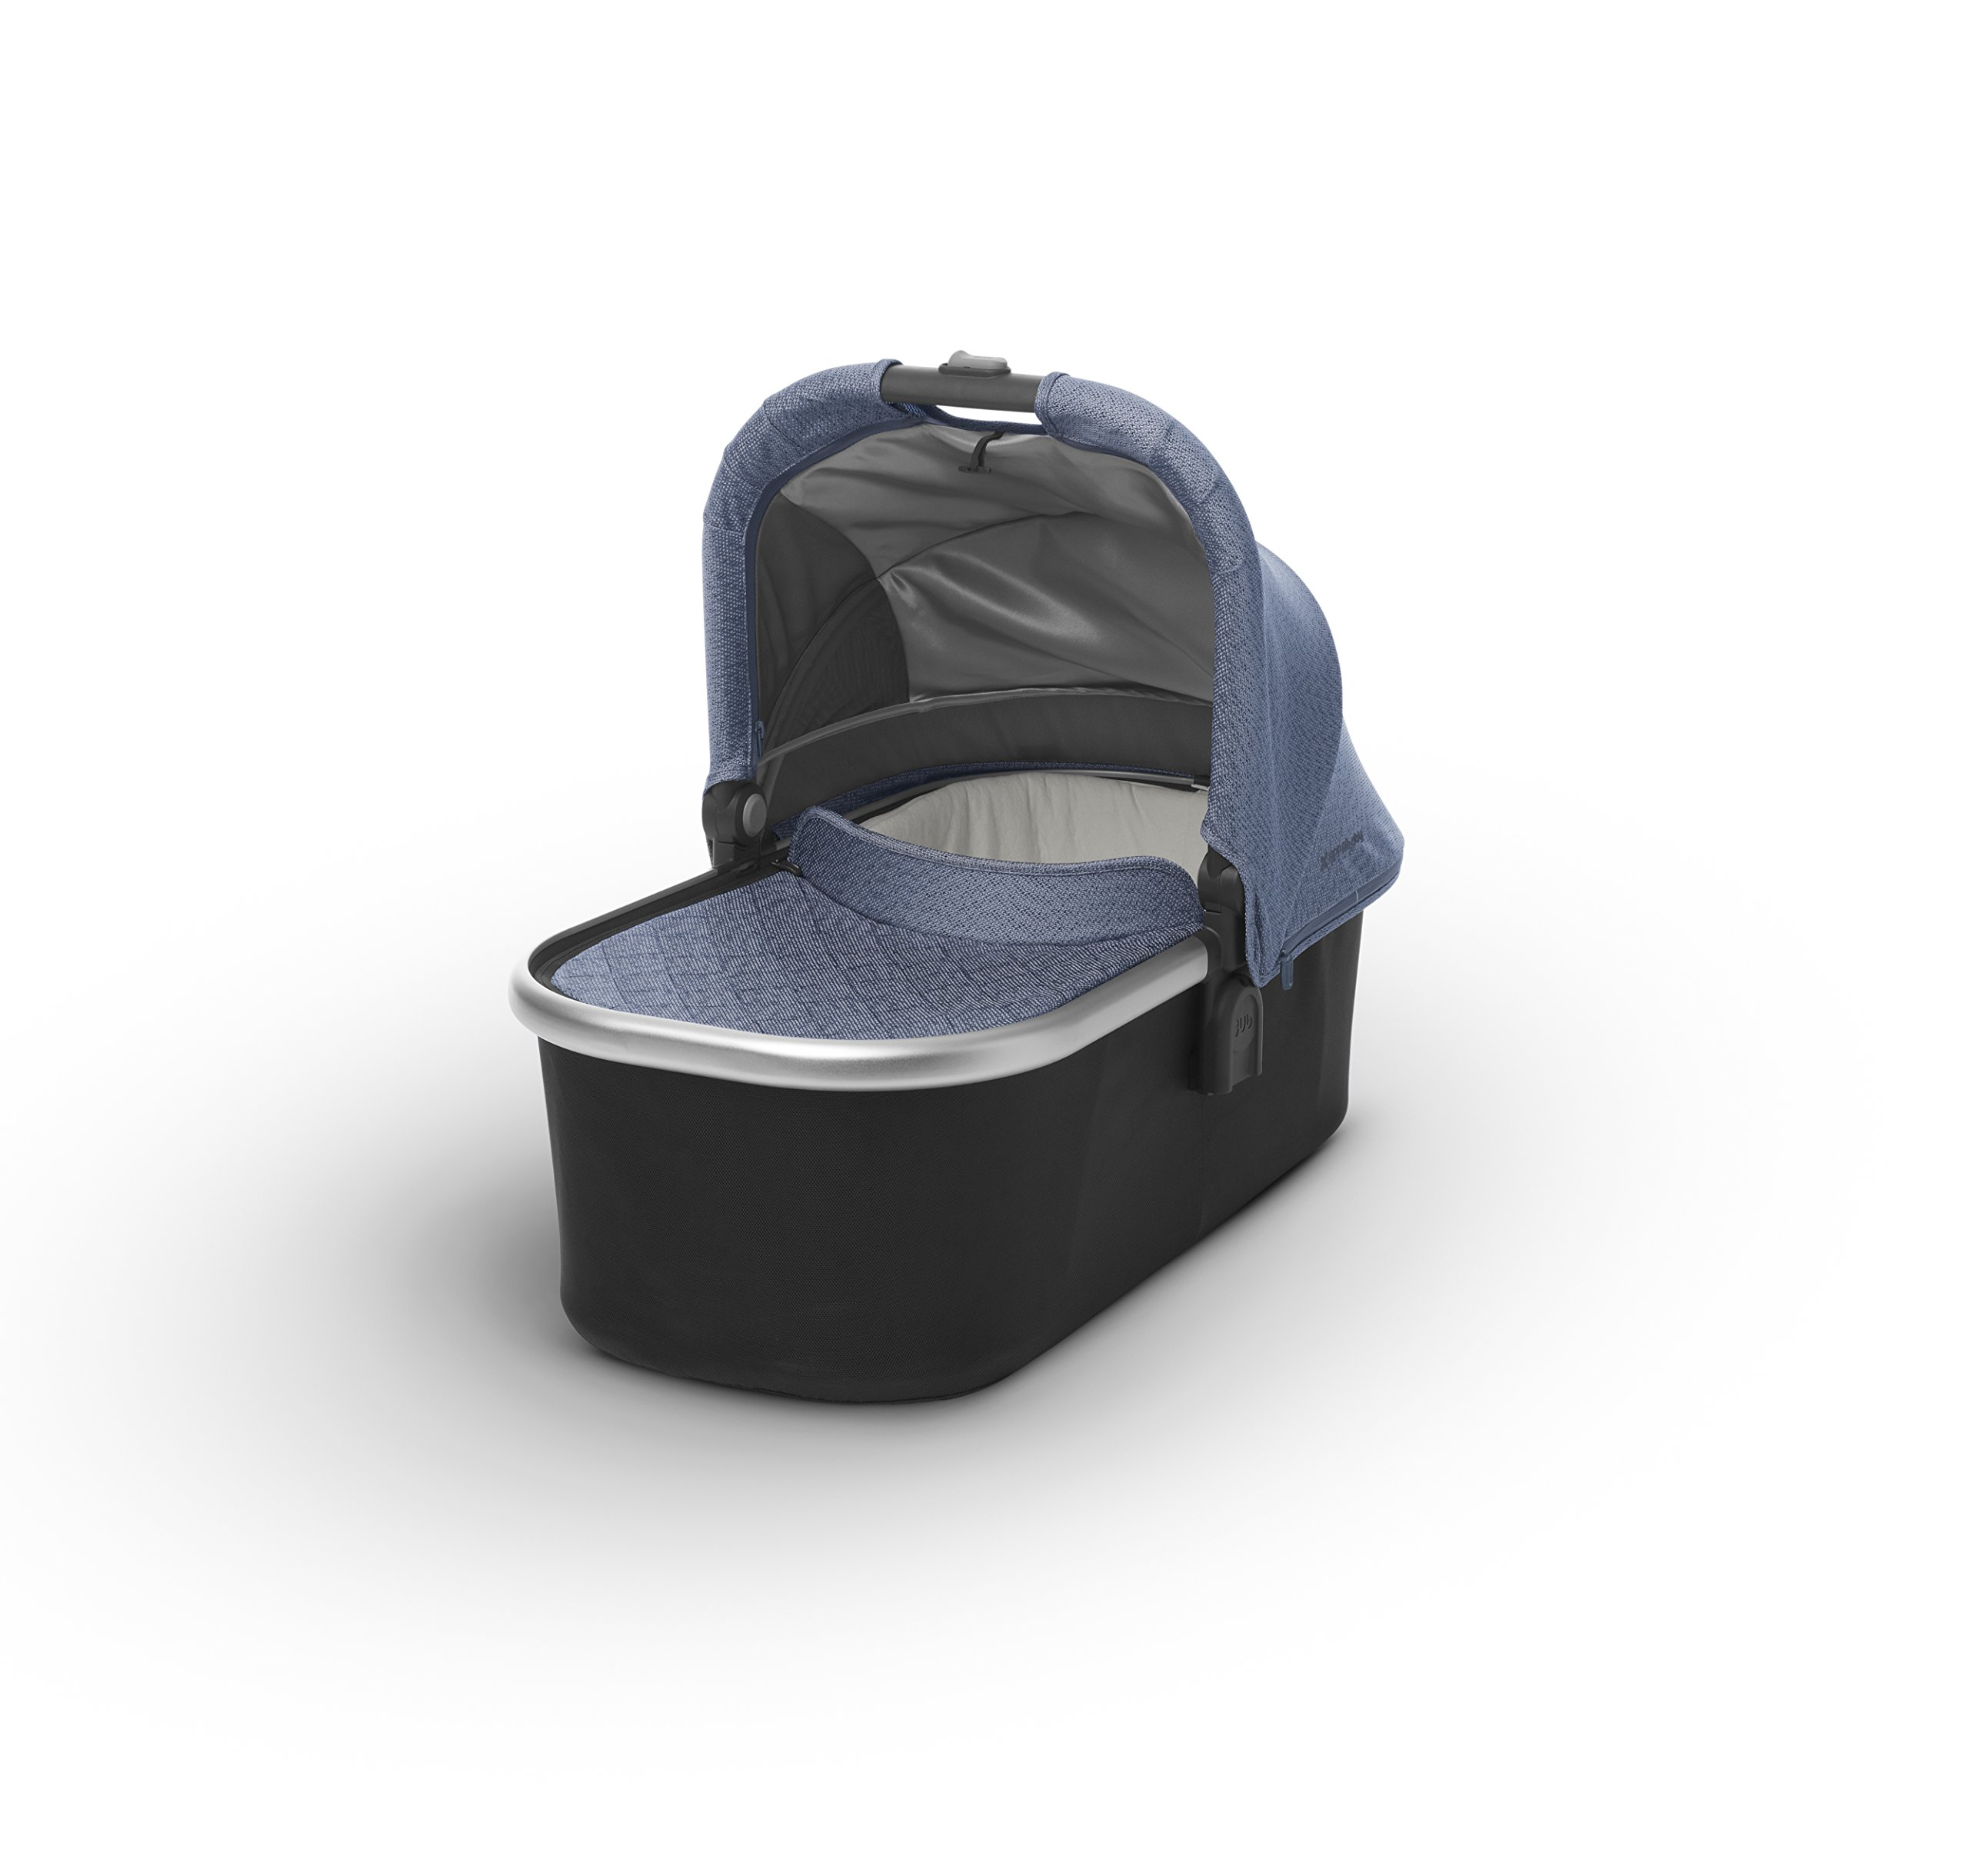 2018 UPPAbaby Bassinet - Henry (Blue Marl/Silver)